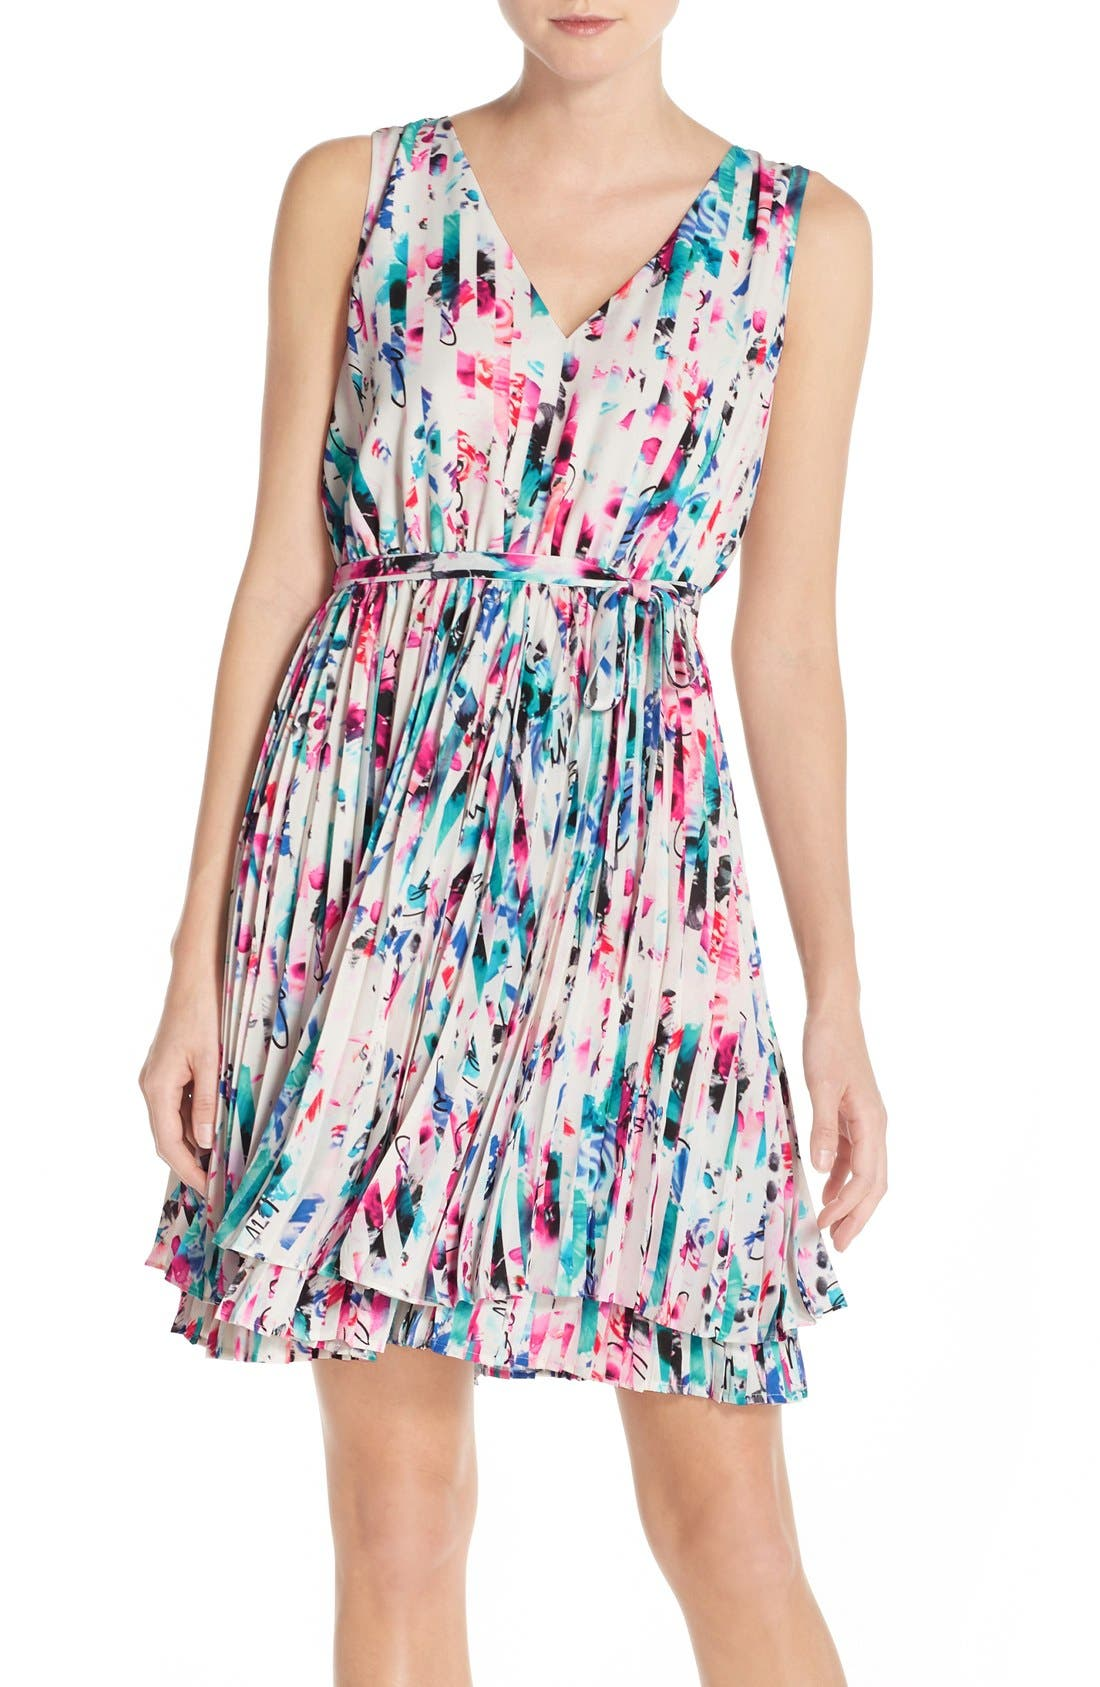 Alternate Image 1 Selected - Chelsea28 Print Woven Fit & Flare Dress